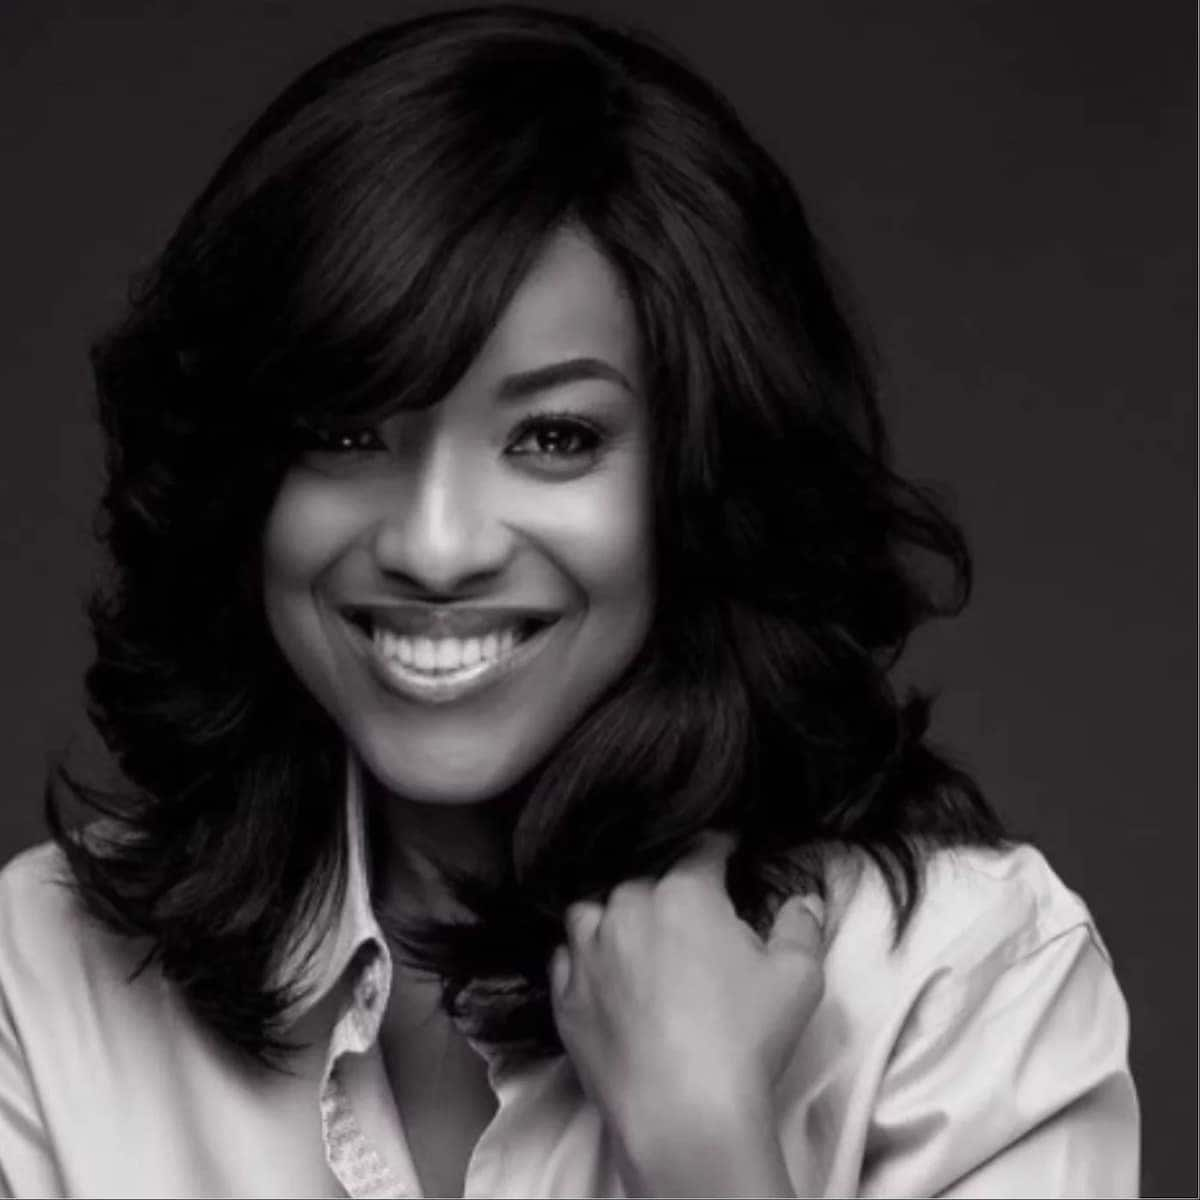 Joselyn Dumas warms hearts on social media with awesome birthday photos